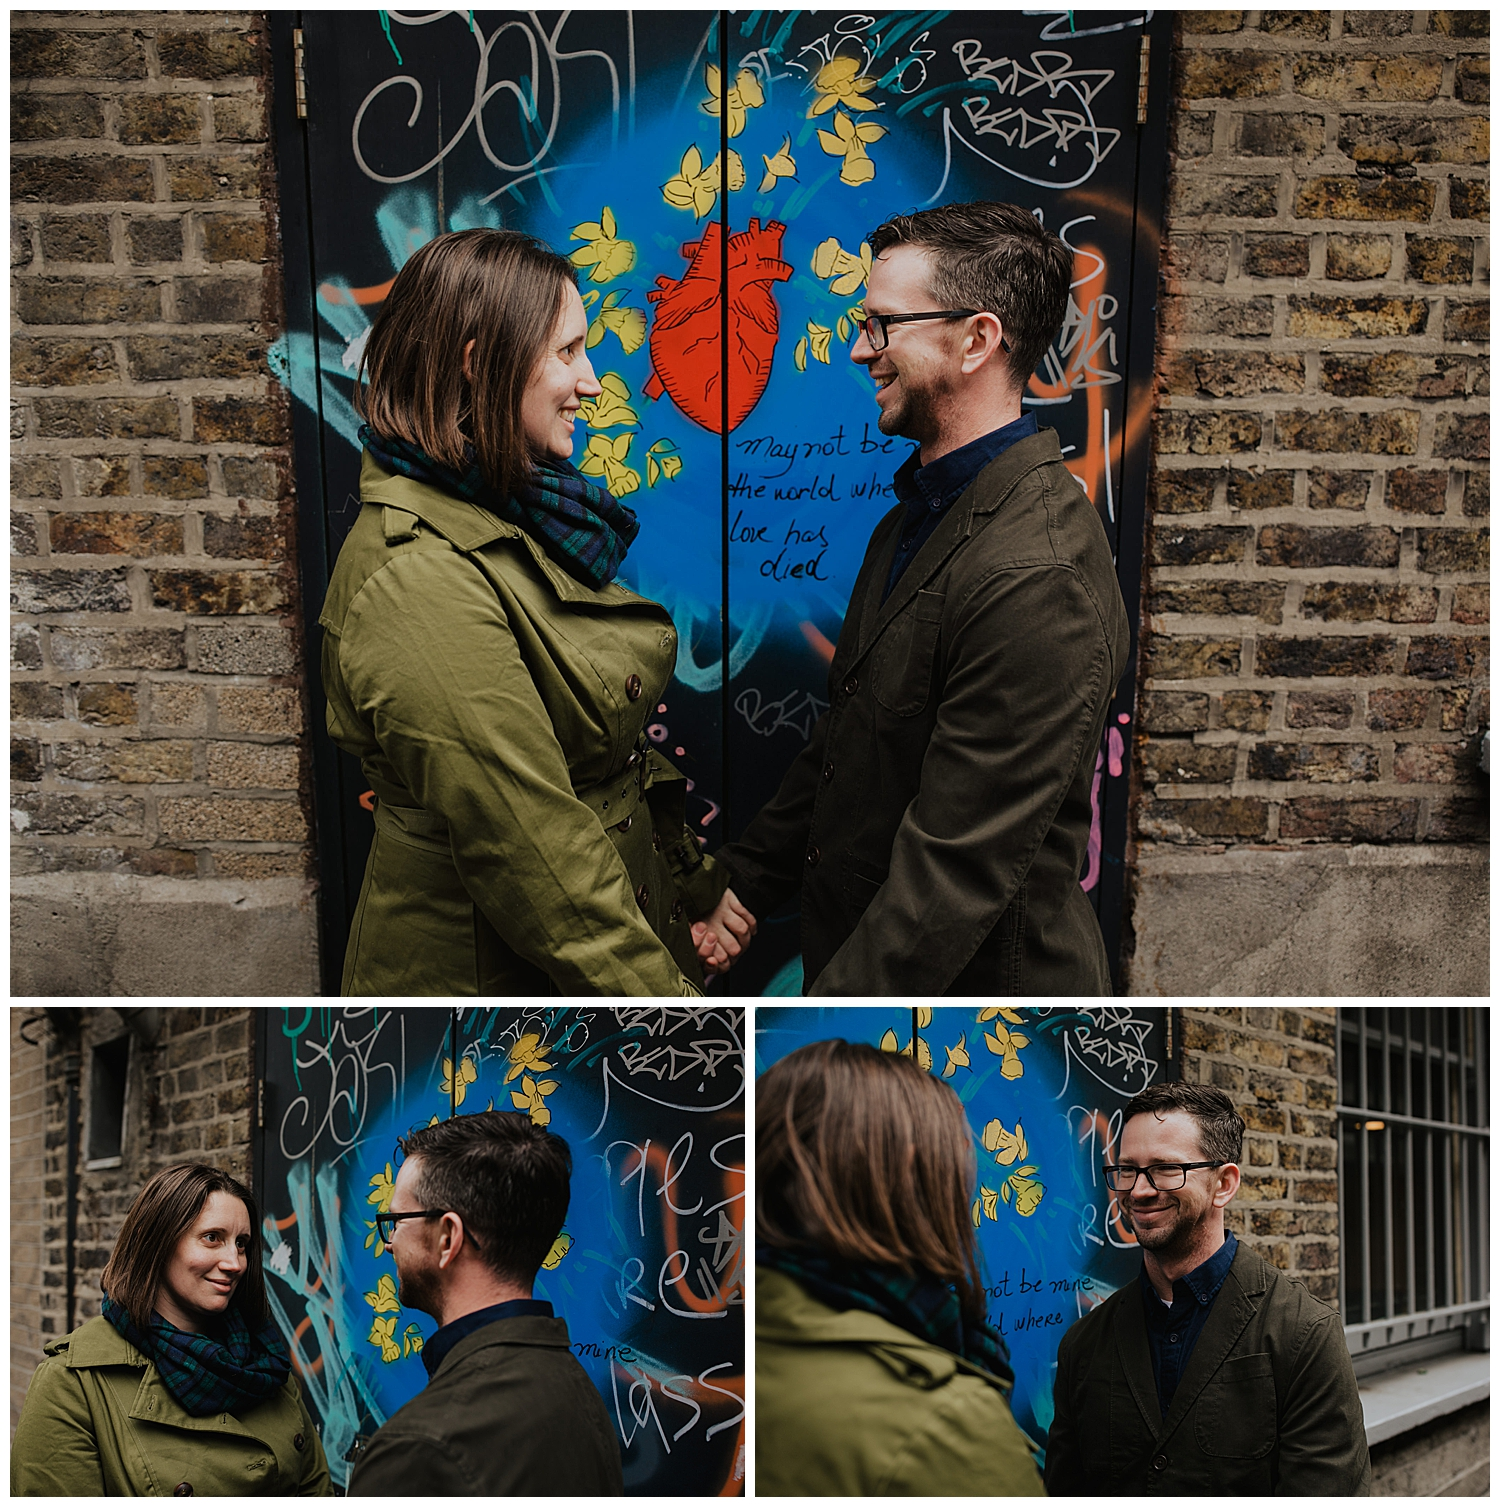 m-m-t-rex-engagement-session-wedding-photographer-dublin-ireland-livia-figueiredo-19.jpg